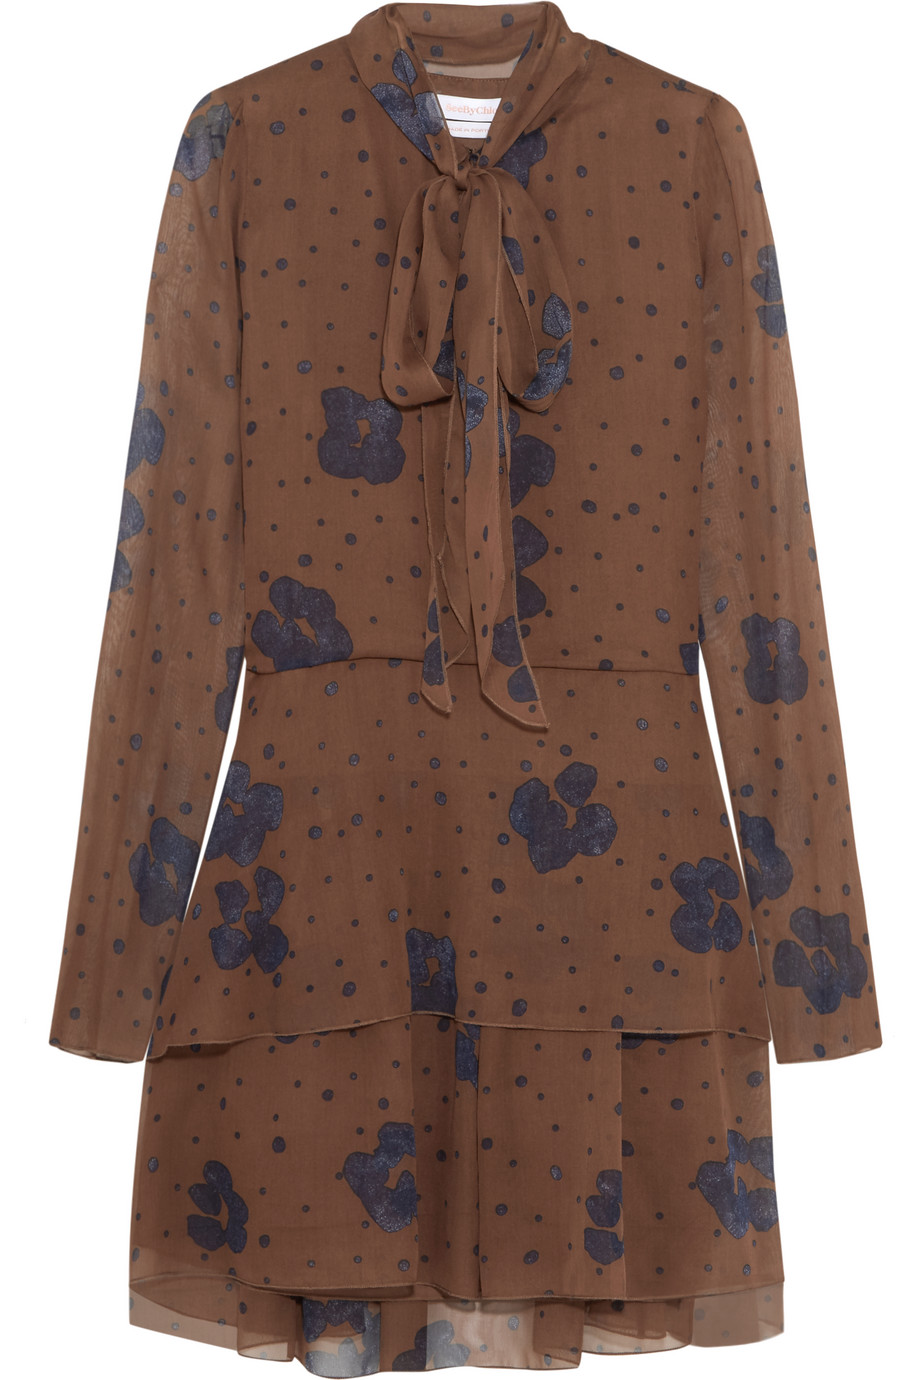 See by Chloé Pussy-Bow Printed Silk Mini Dress, Brown/Navy, Women's - Printed, Size: 36